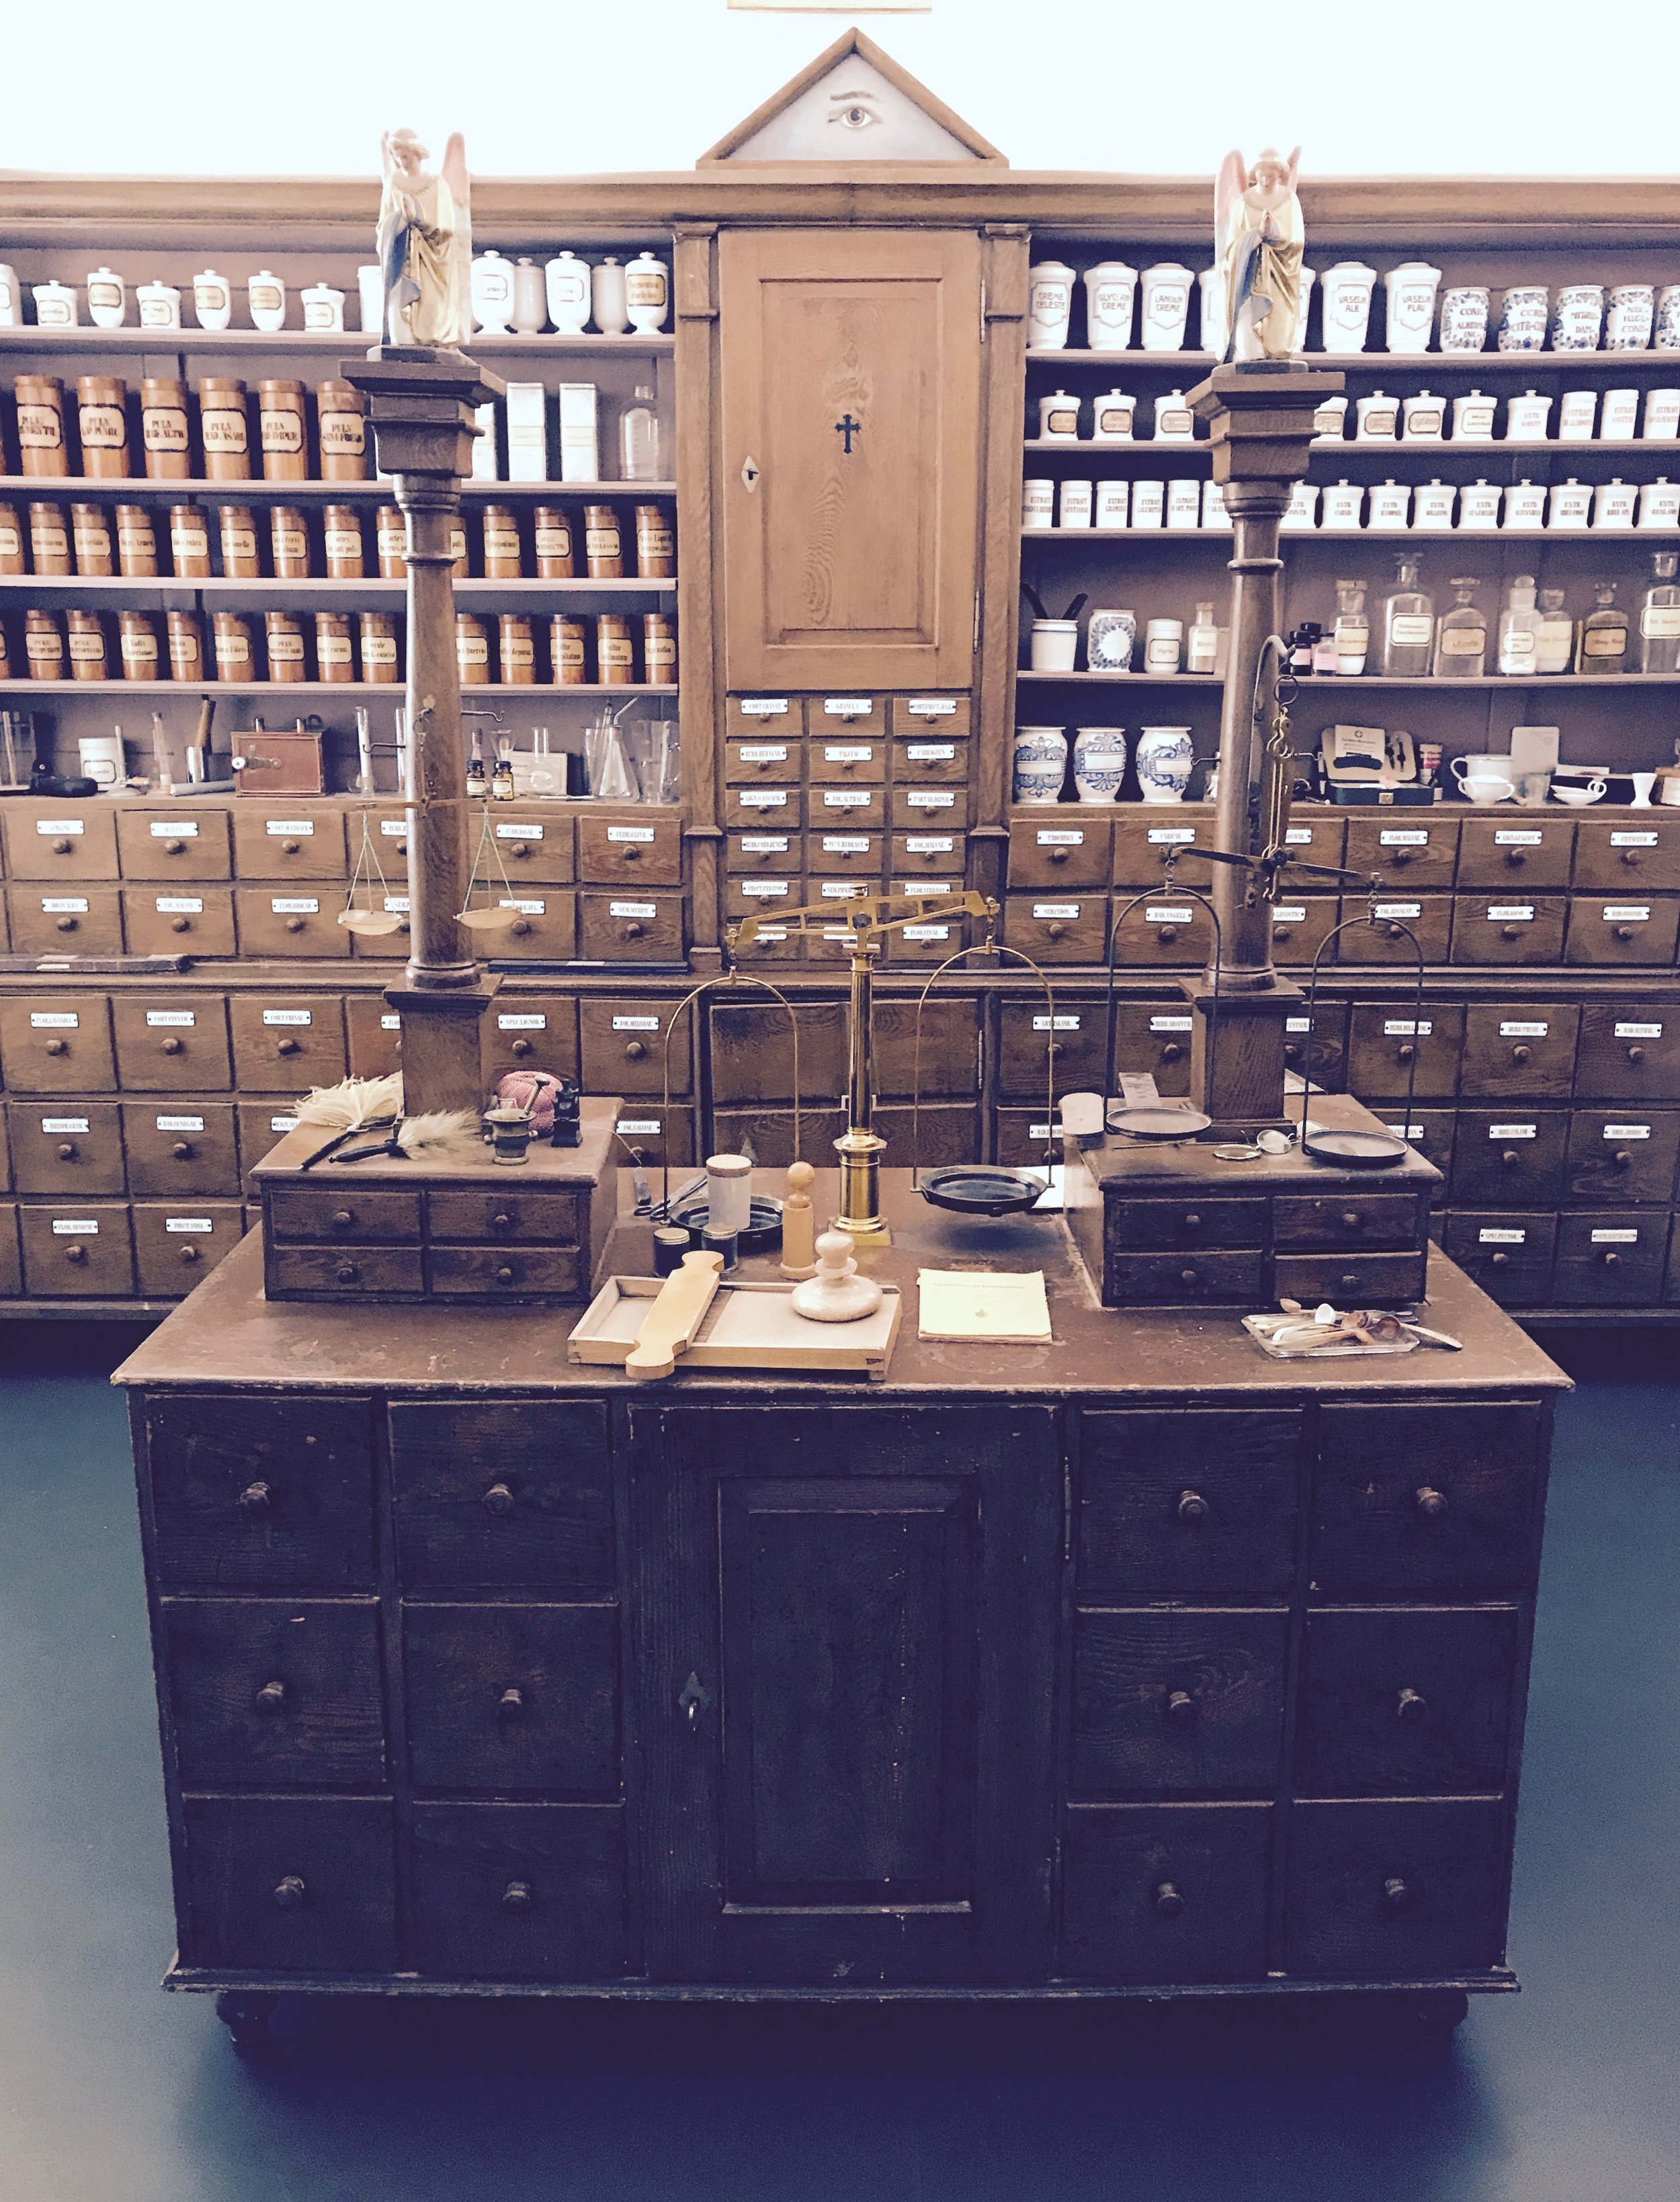 central view into the spiritual pharmacy